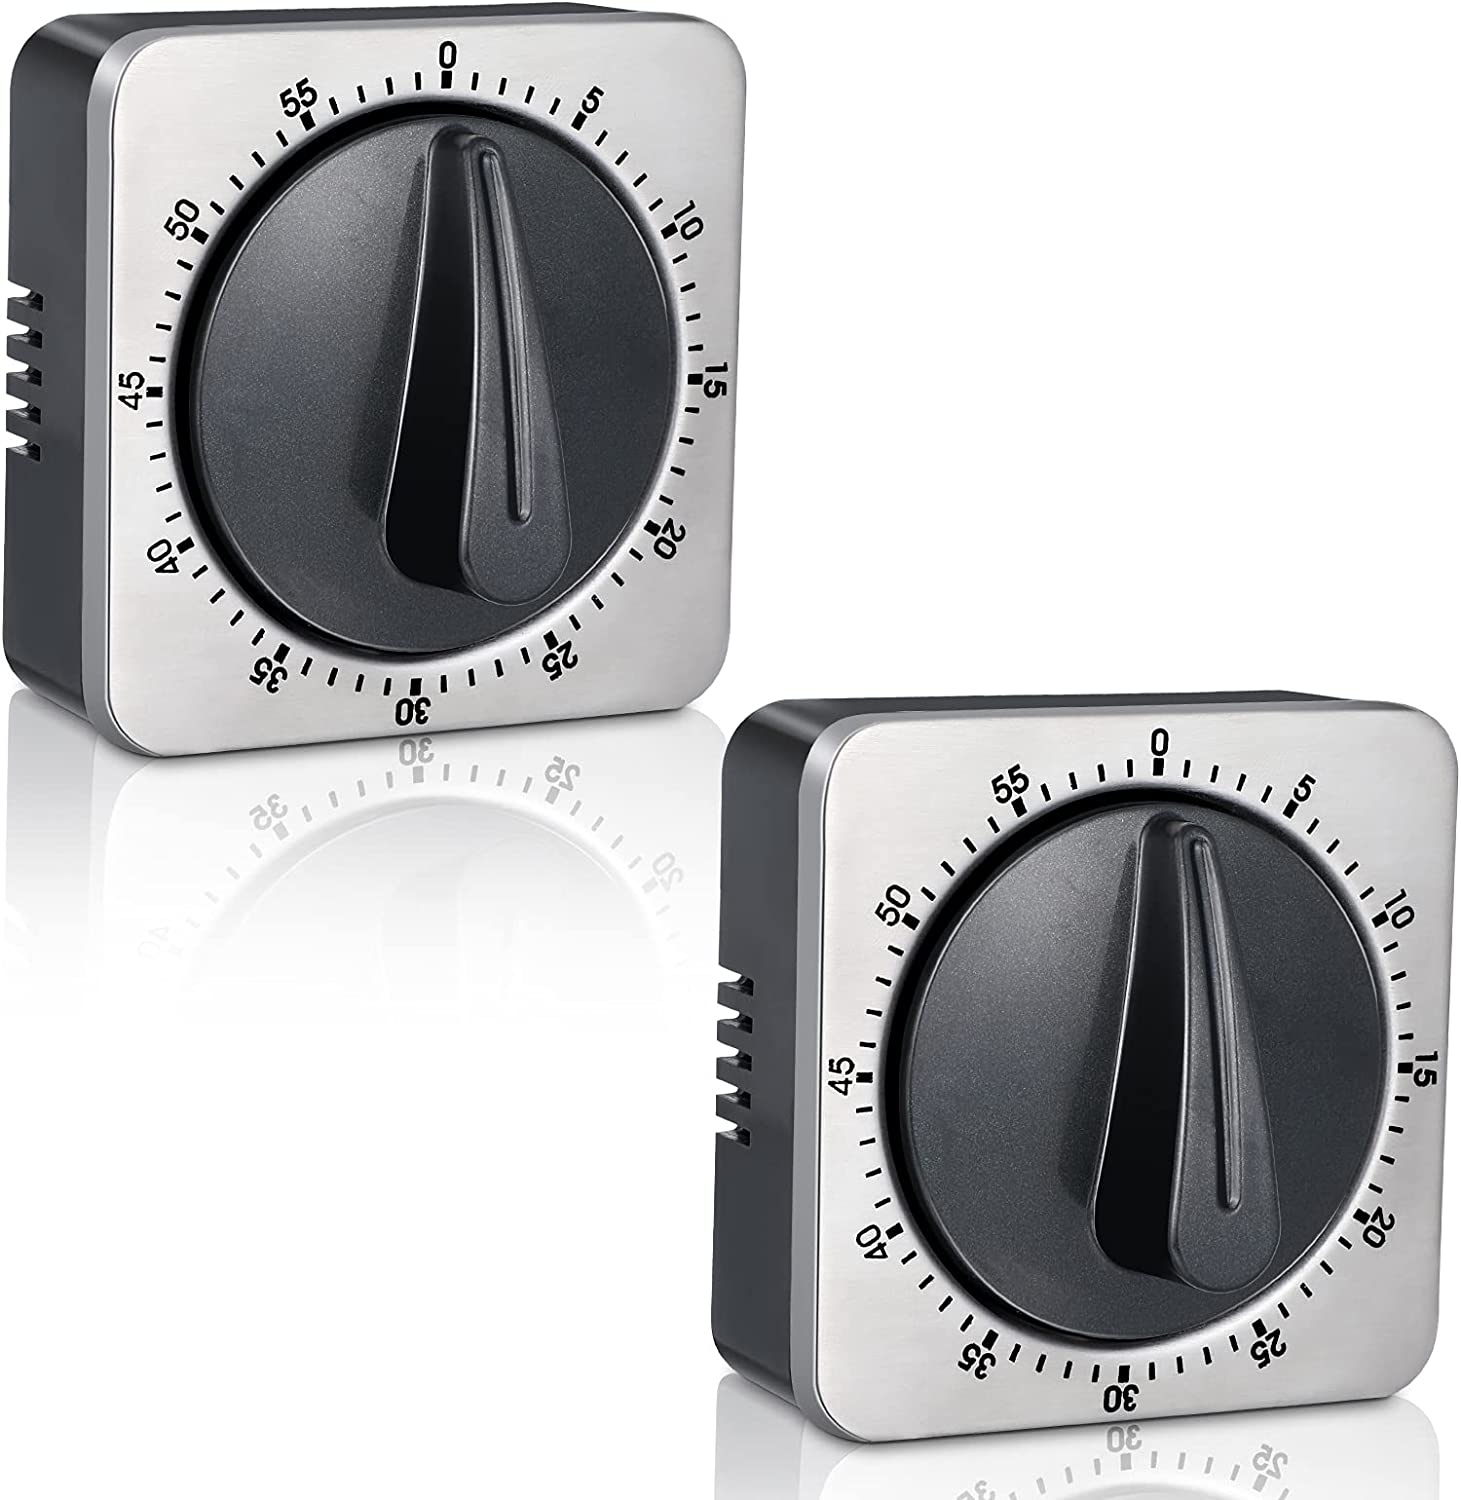 2 Pieces Digital Kitchen Timer 60 Minute Timer with Loud Alarm Magnetic Countdown Timer Mechanical Cooking Timer for Home Baking Homework Exercise